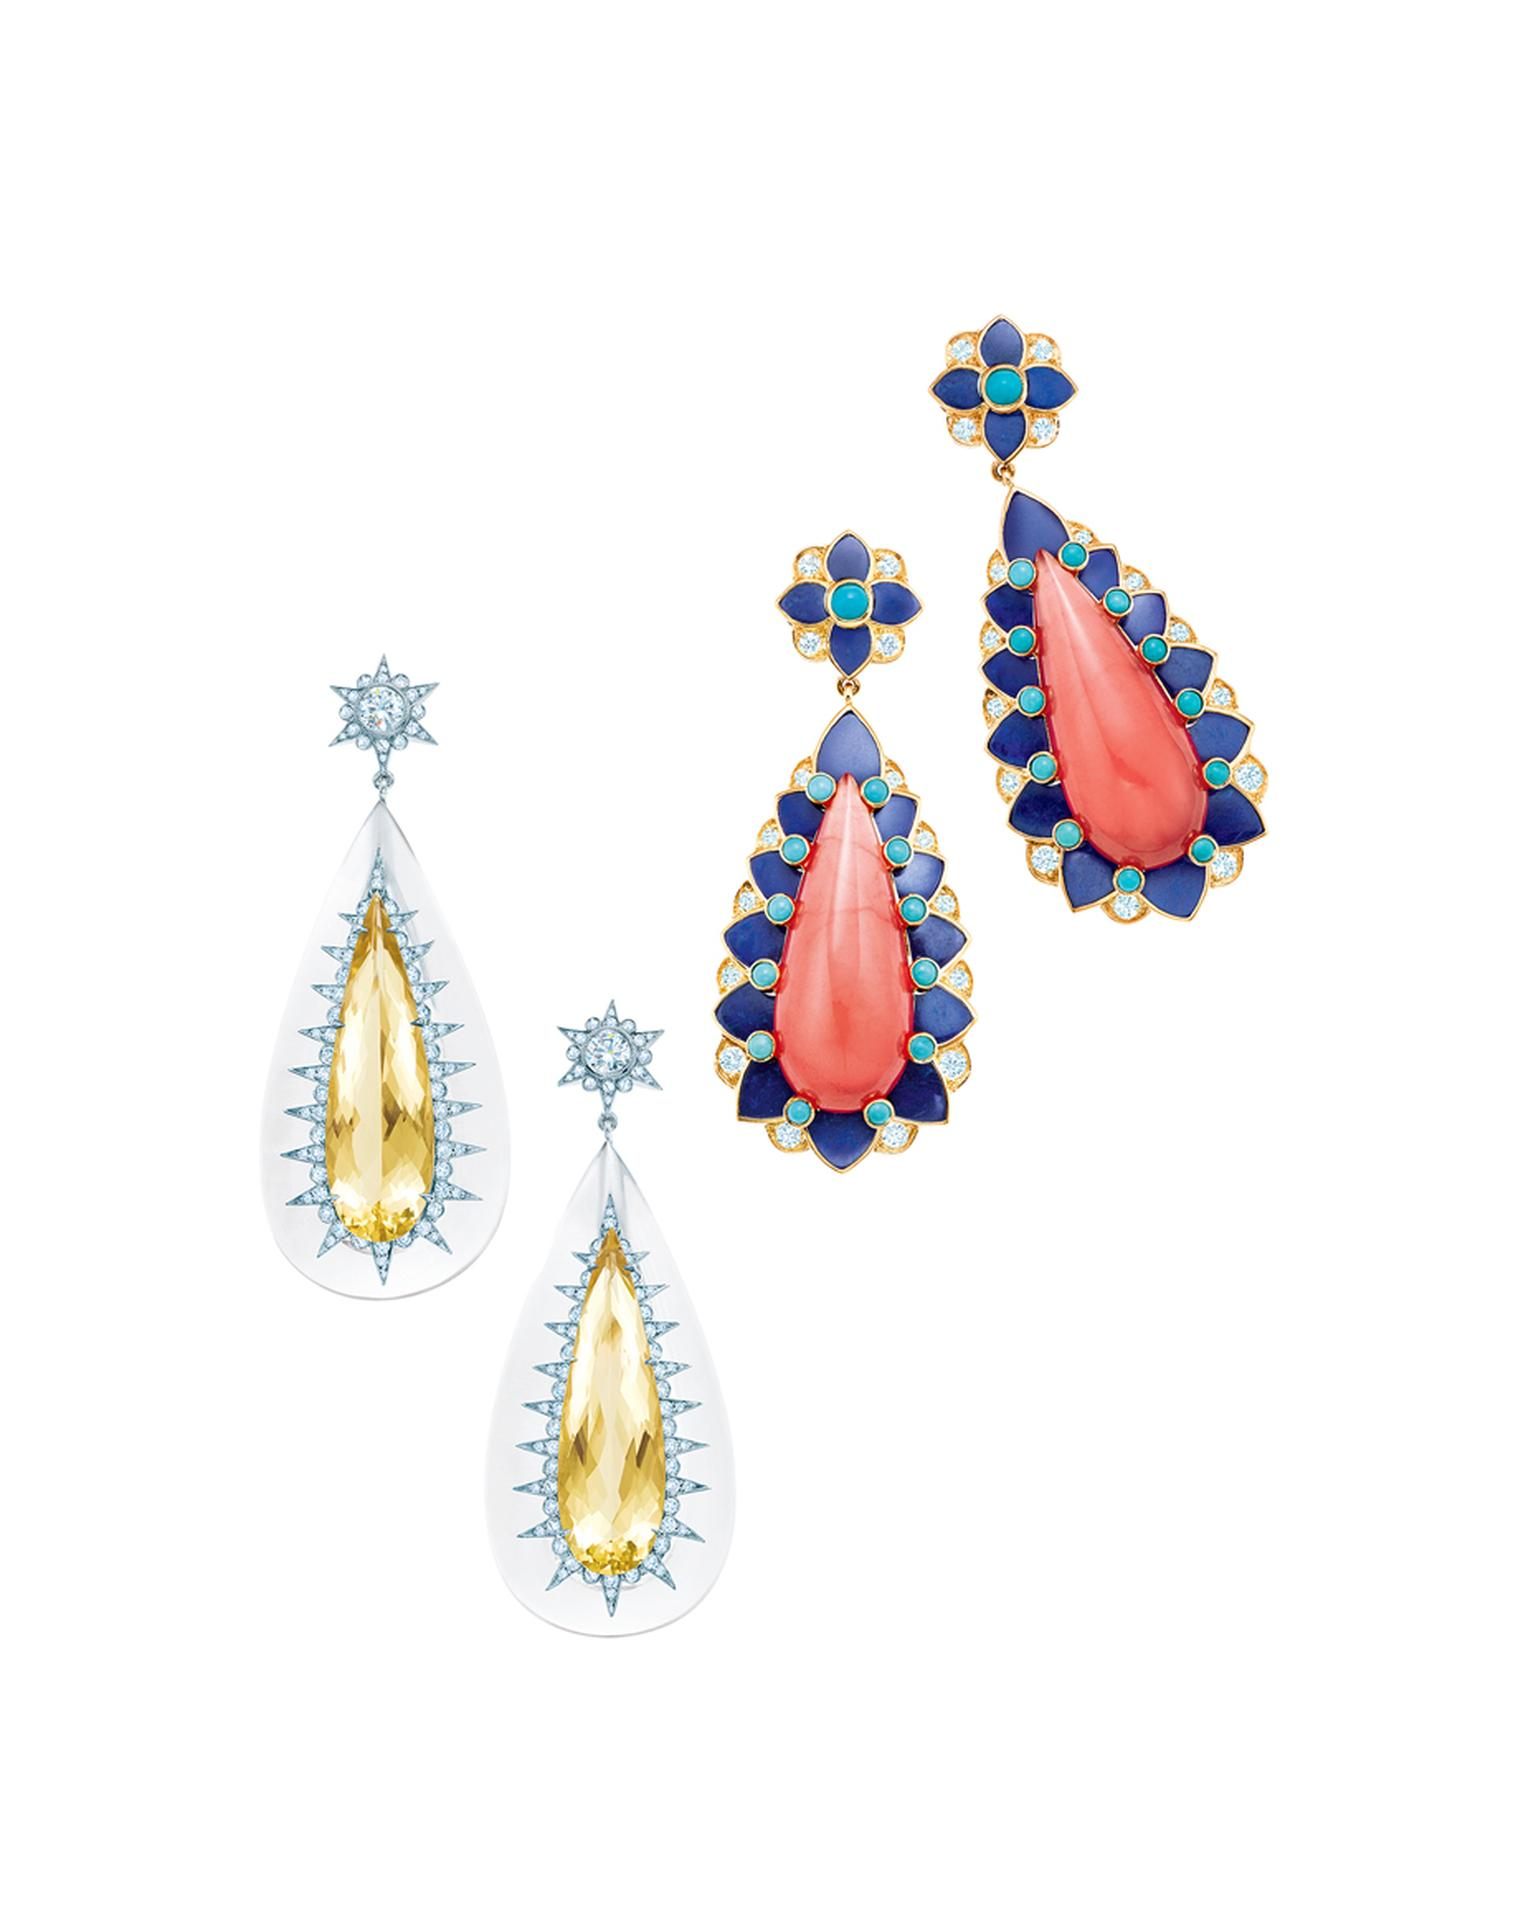 The distinctive cabochon rhodochrosite, lapis lazuli, turquoise and diamond Tiffany & Co. earrings (right) worn by Amy Adams on the 2014 Oscars red carpet